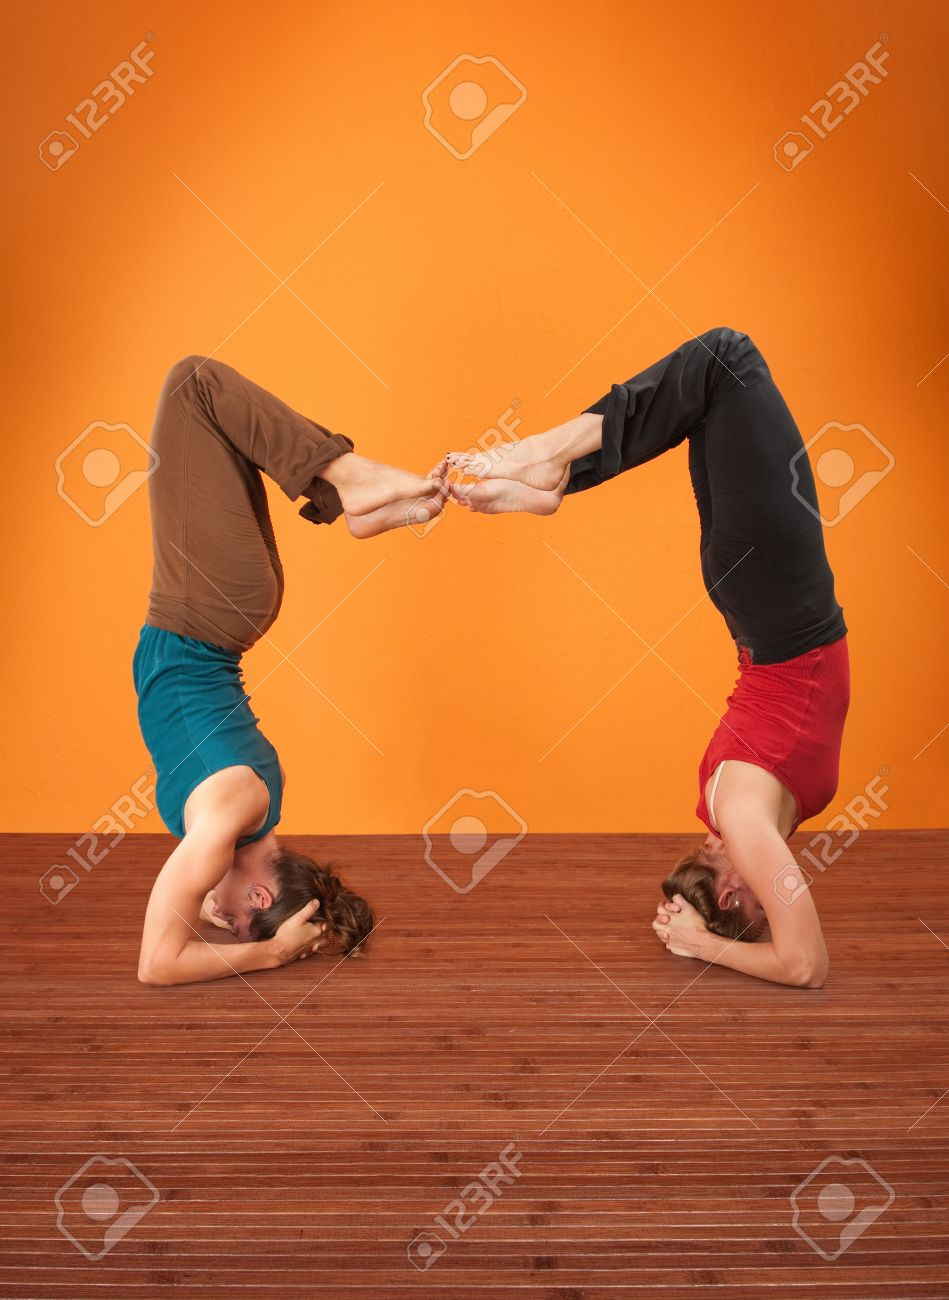 Two Women Perform Vrisikasana Yoga Posture On A Wooden Mat Stock